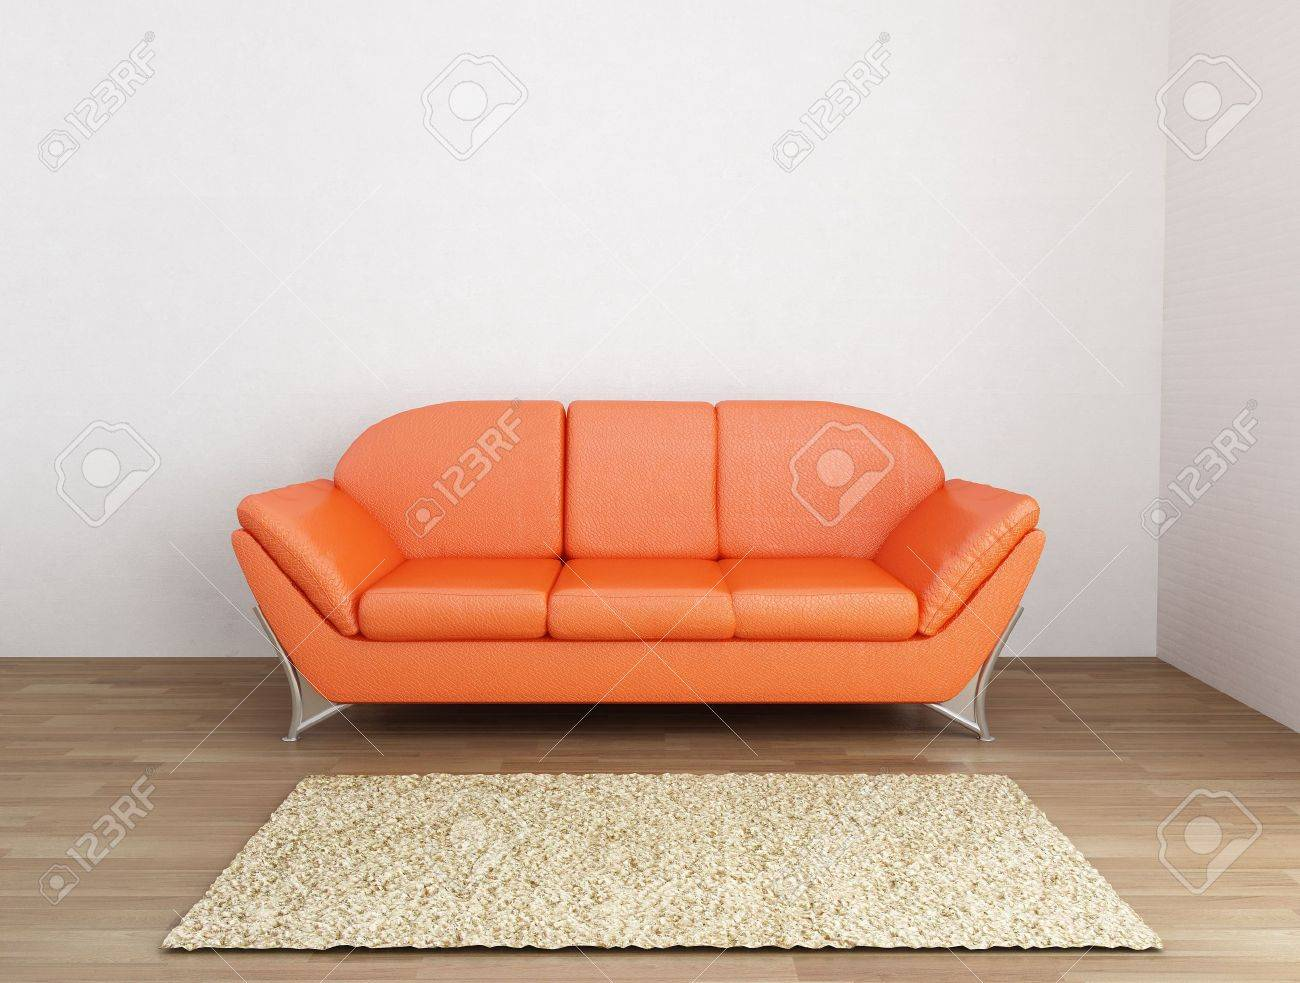 Orange Leather Couch To Face A Blank Wall Stock Photo   5958426